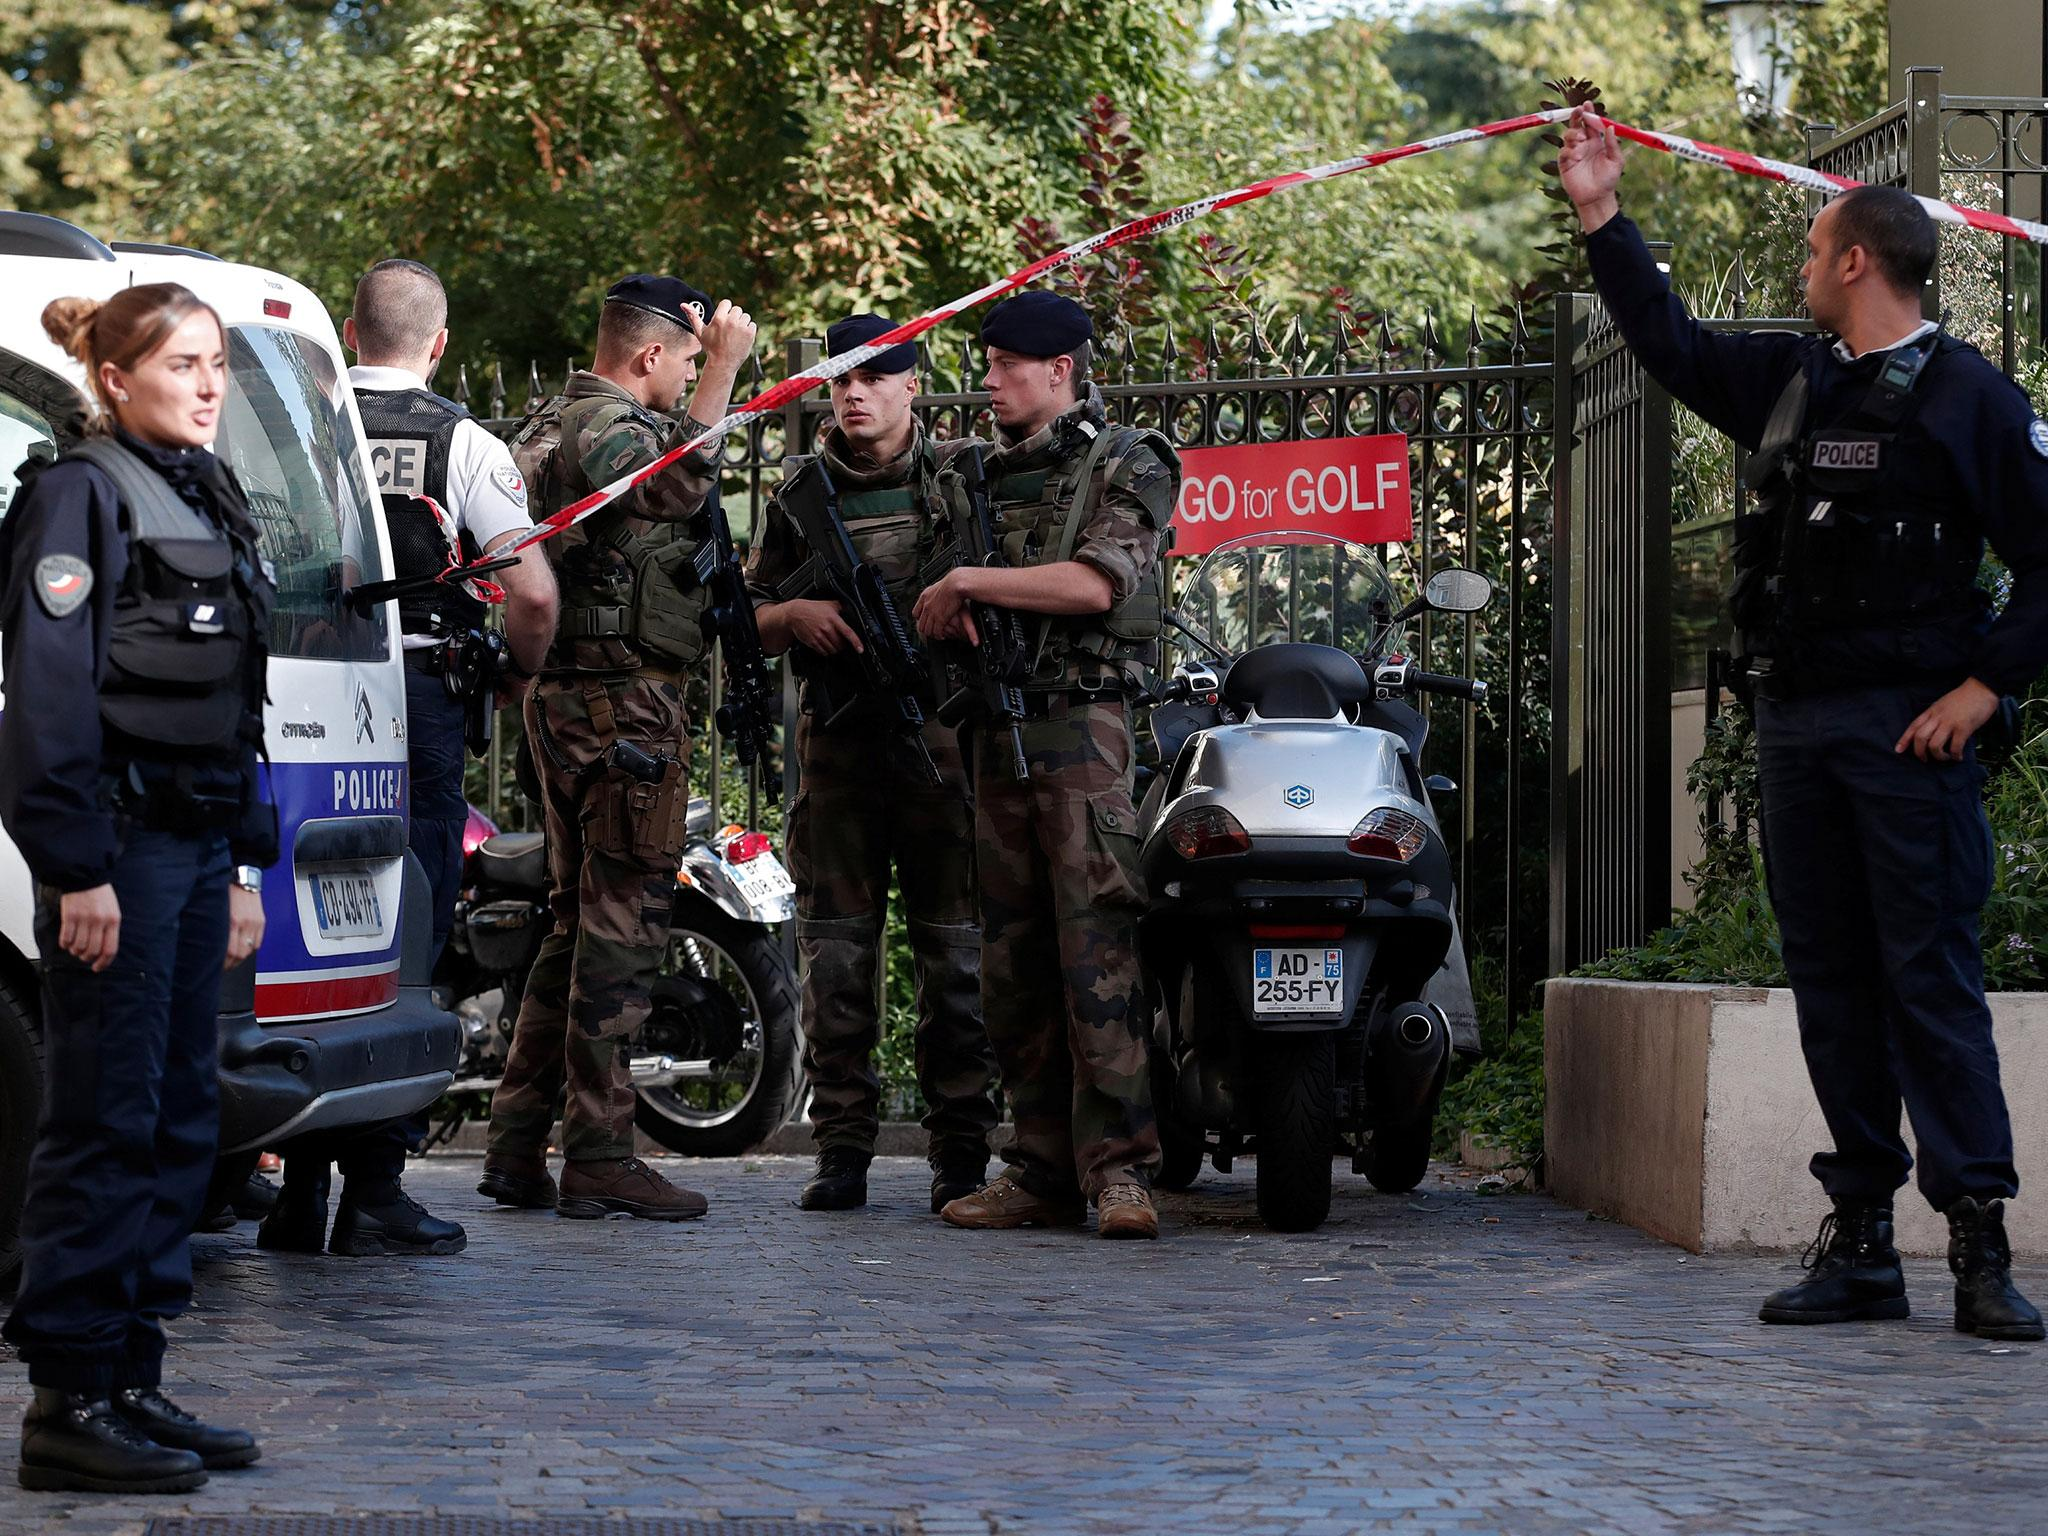 Army color casing ceremony script - Paris Attack Six French Soldiers Injured After Being Deliberately Hit By Bmw In Suspected Terror Attack The Independent